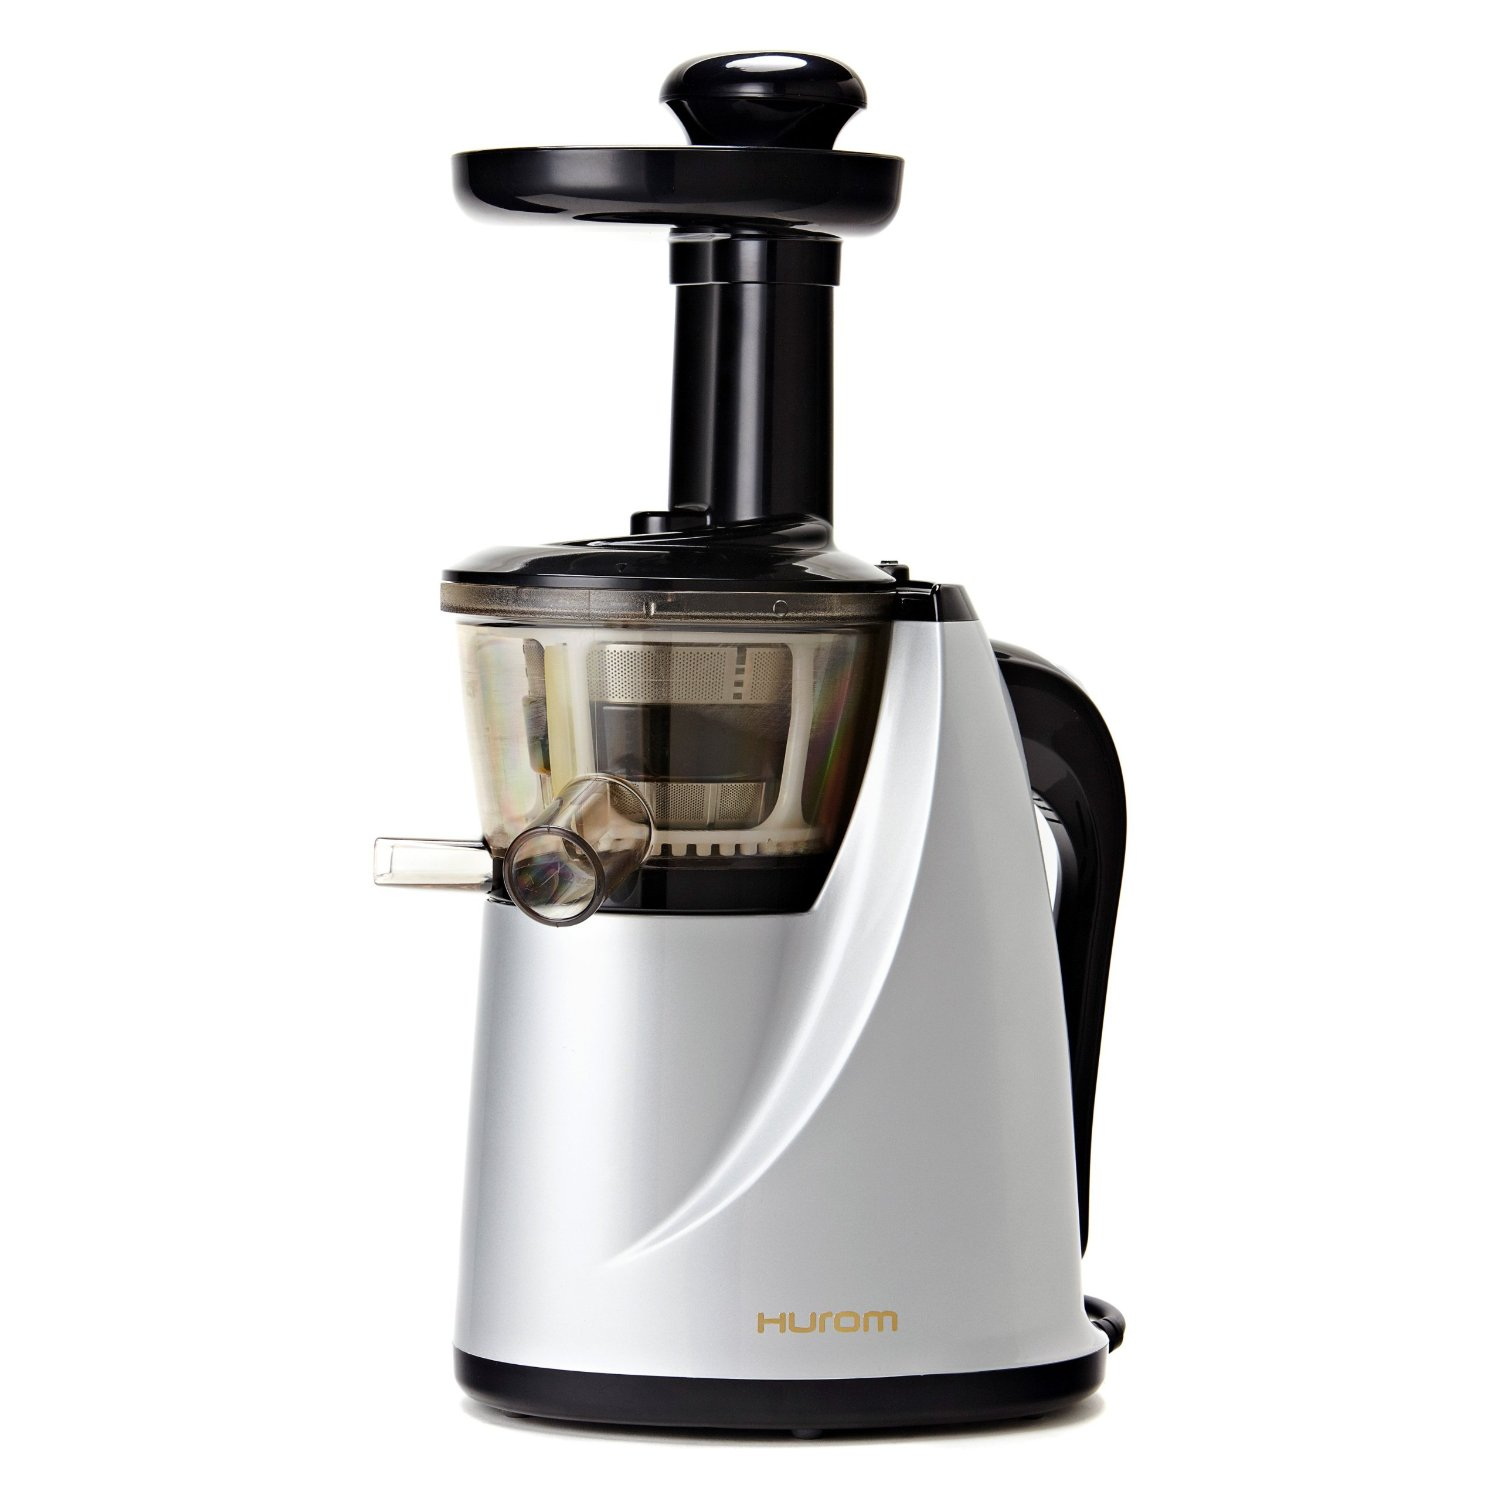 Hurom Hu 500 Slow Juicer Review : Hurom HU-100 Masticating Slow Juicer Review - Best Cold Press Juicers